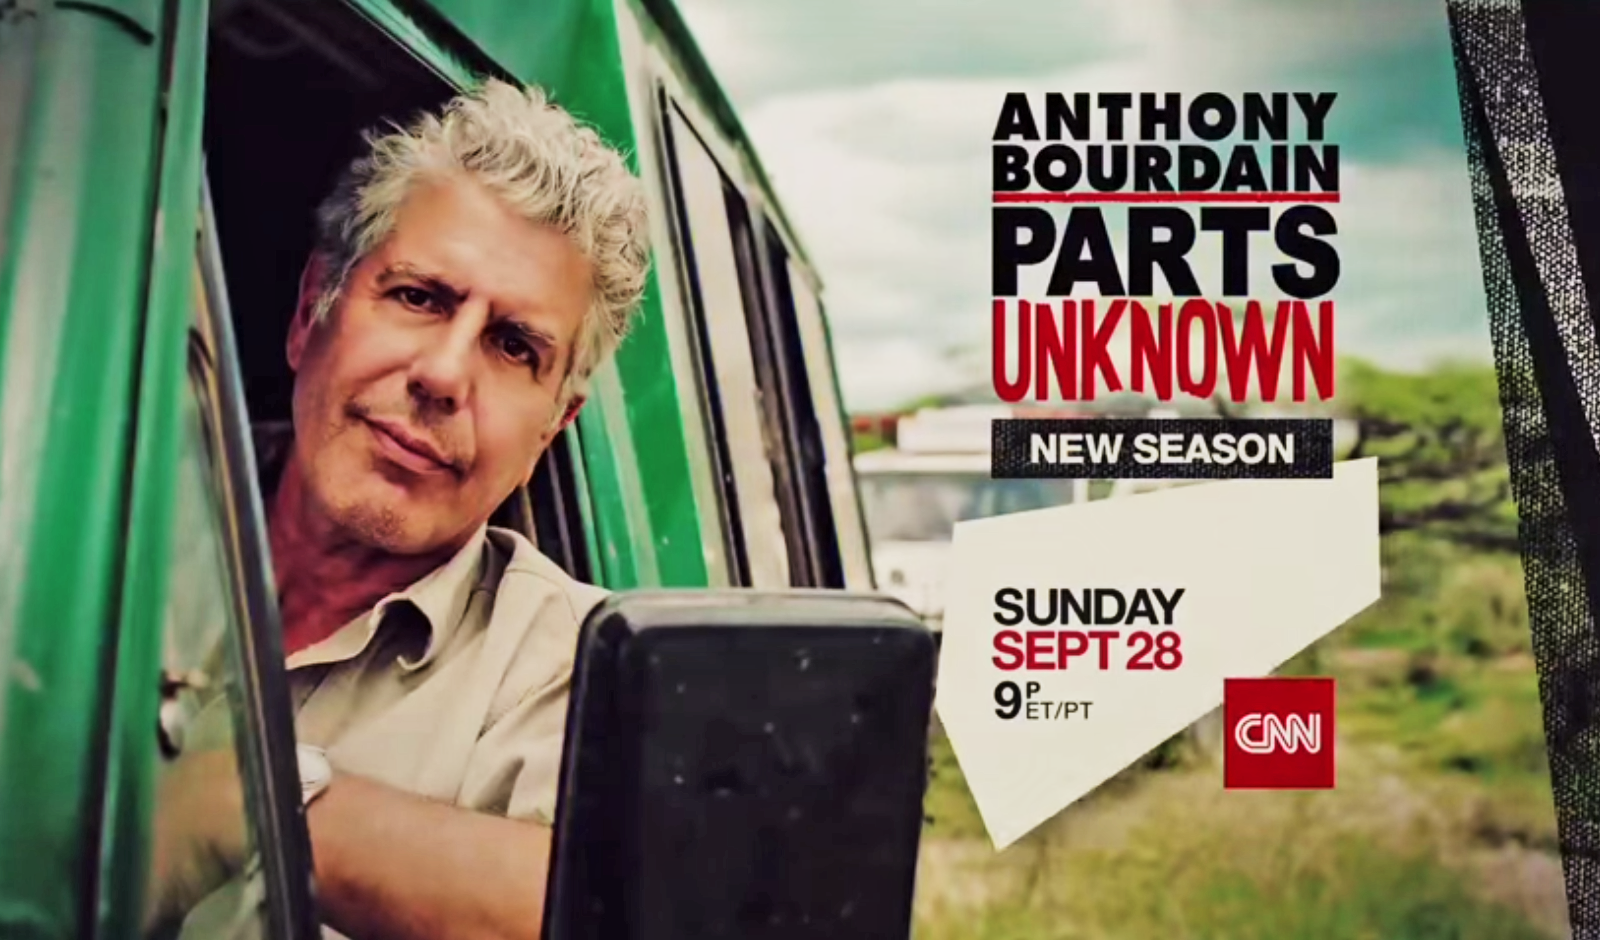 http://www.cnn.com/shows/anthony-bourdain-parts-unknown